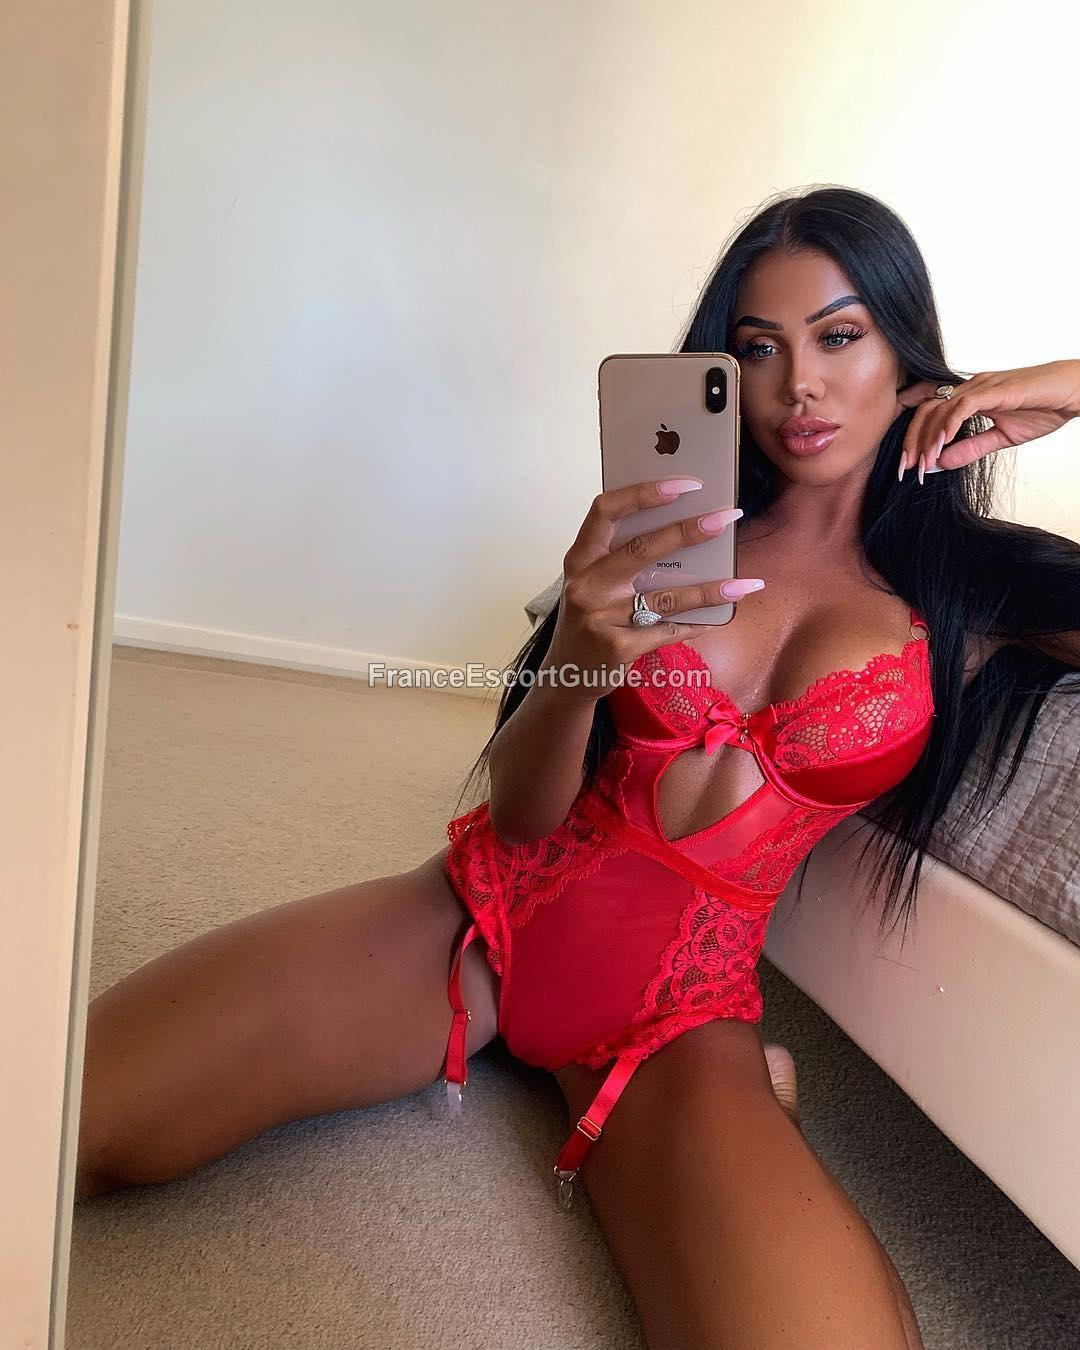 Naomie from France Escort Guide